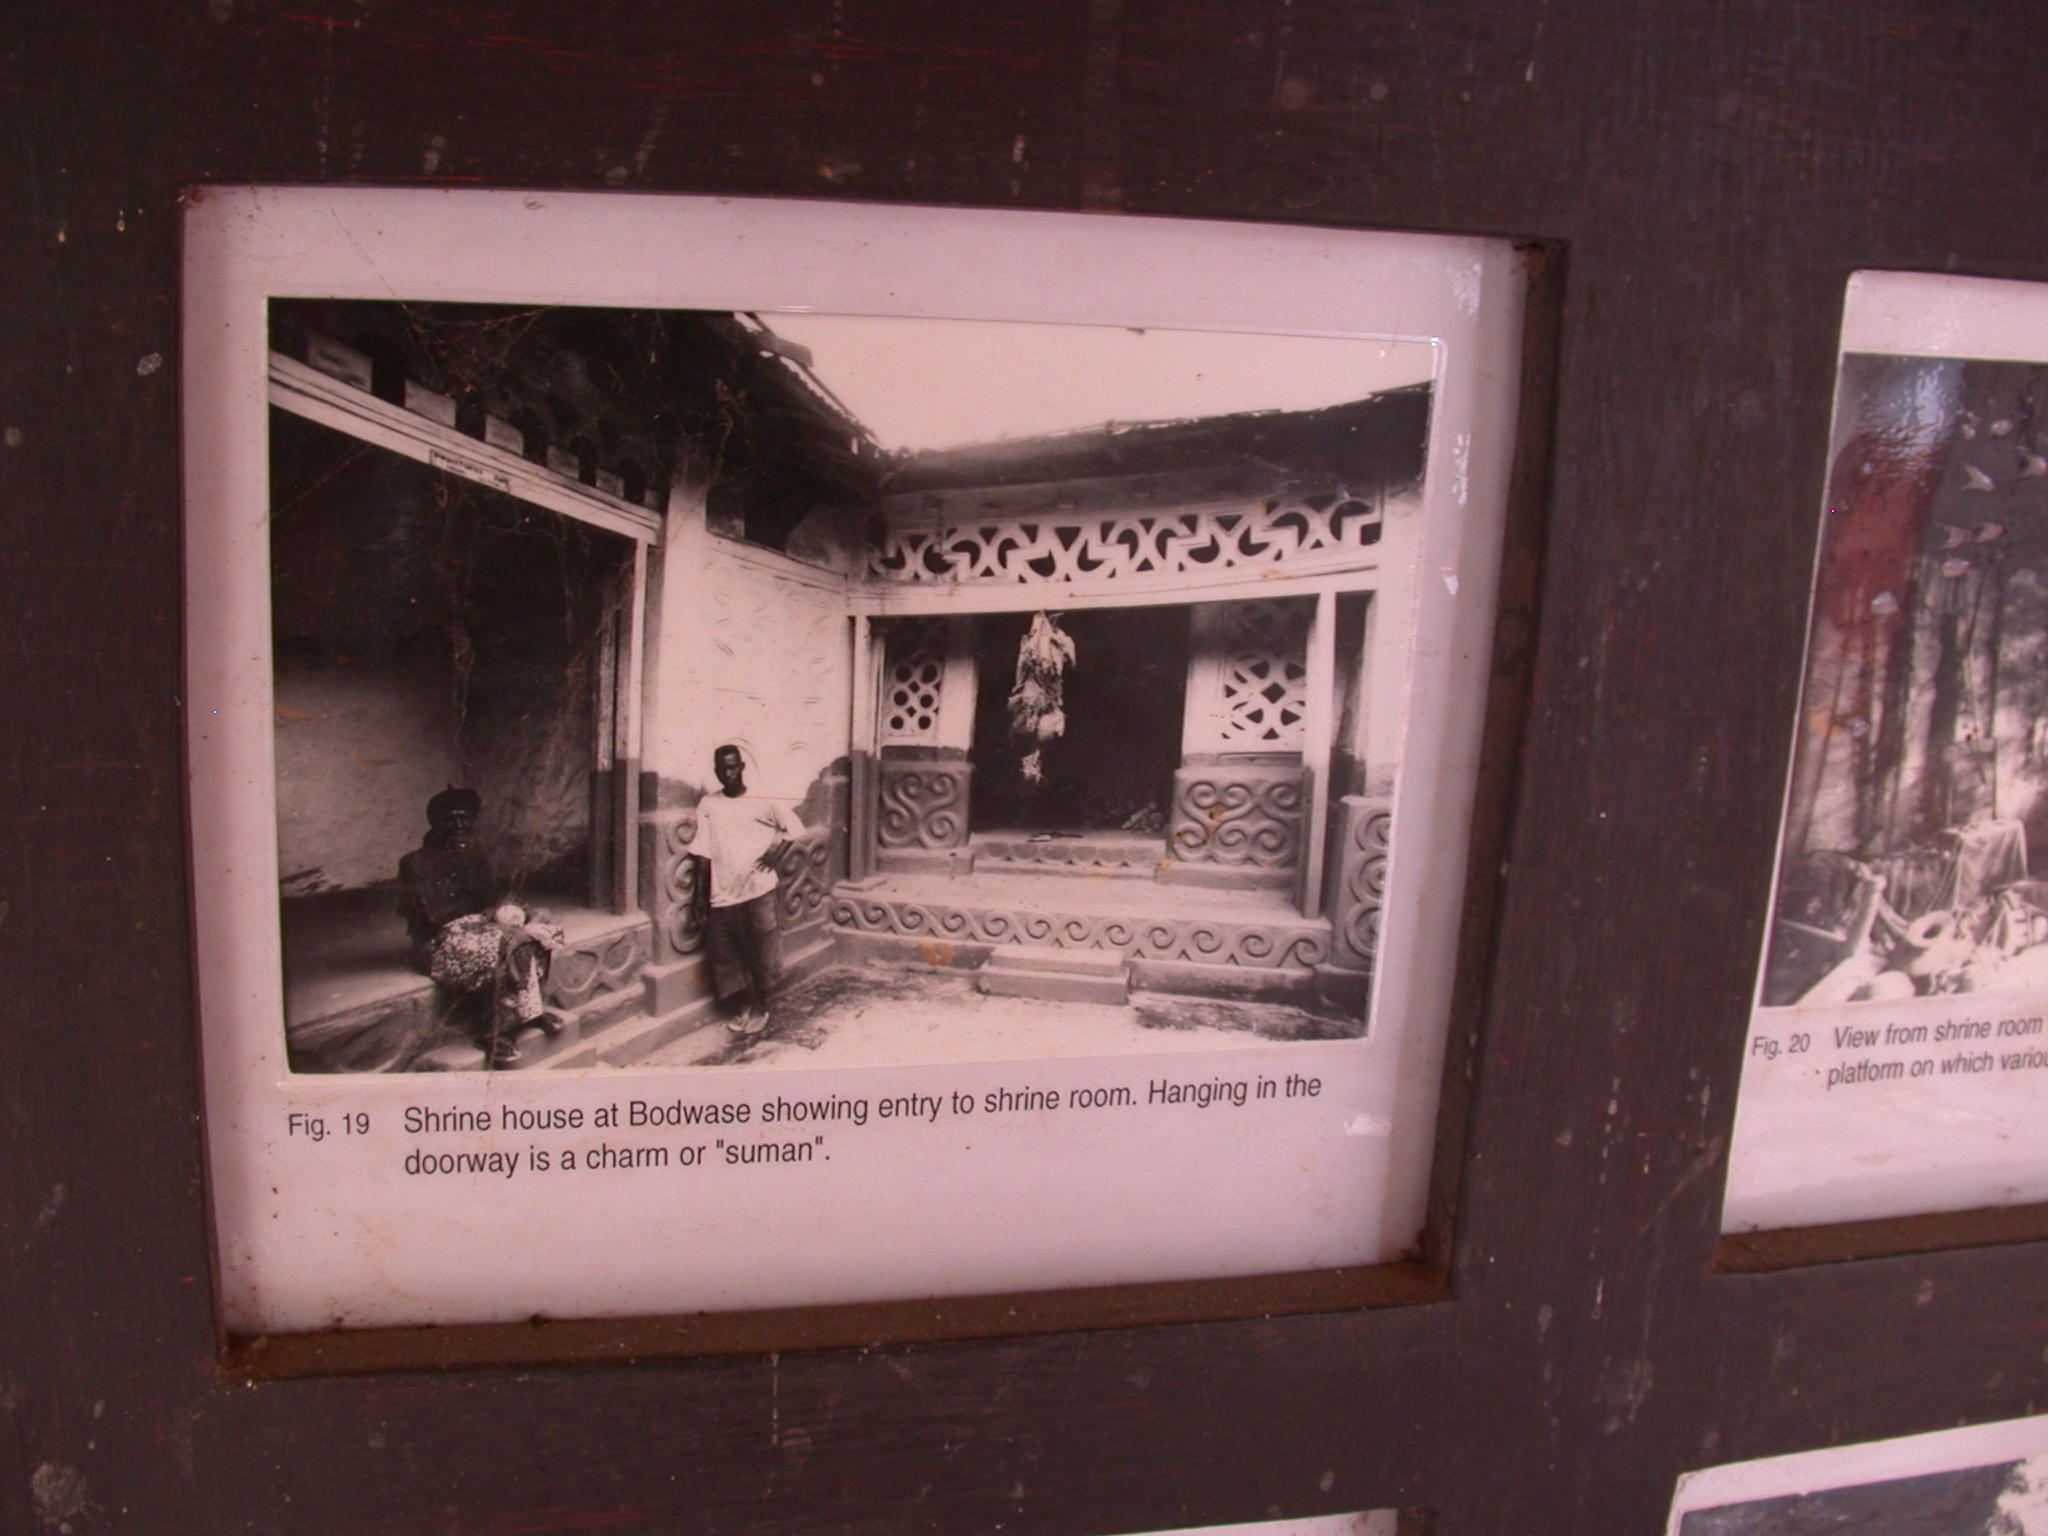 Photograph of Bodwase Shrine House With Suman Charm Hanging in Dooryway of Shrine Room, Asante Traditional Shrine at Ejisu-Besease, Ghana